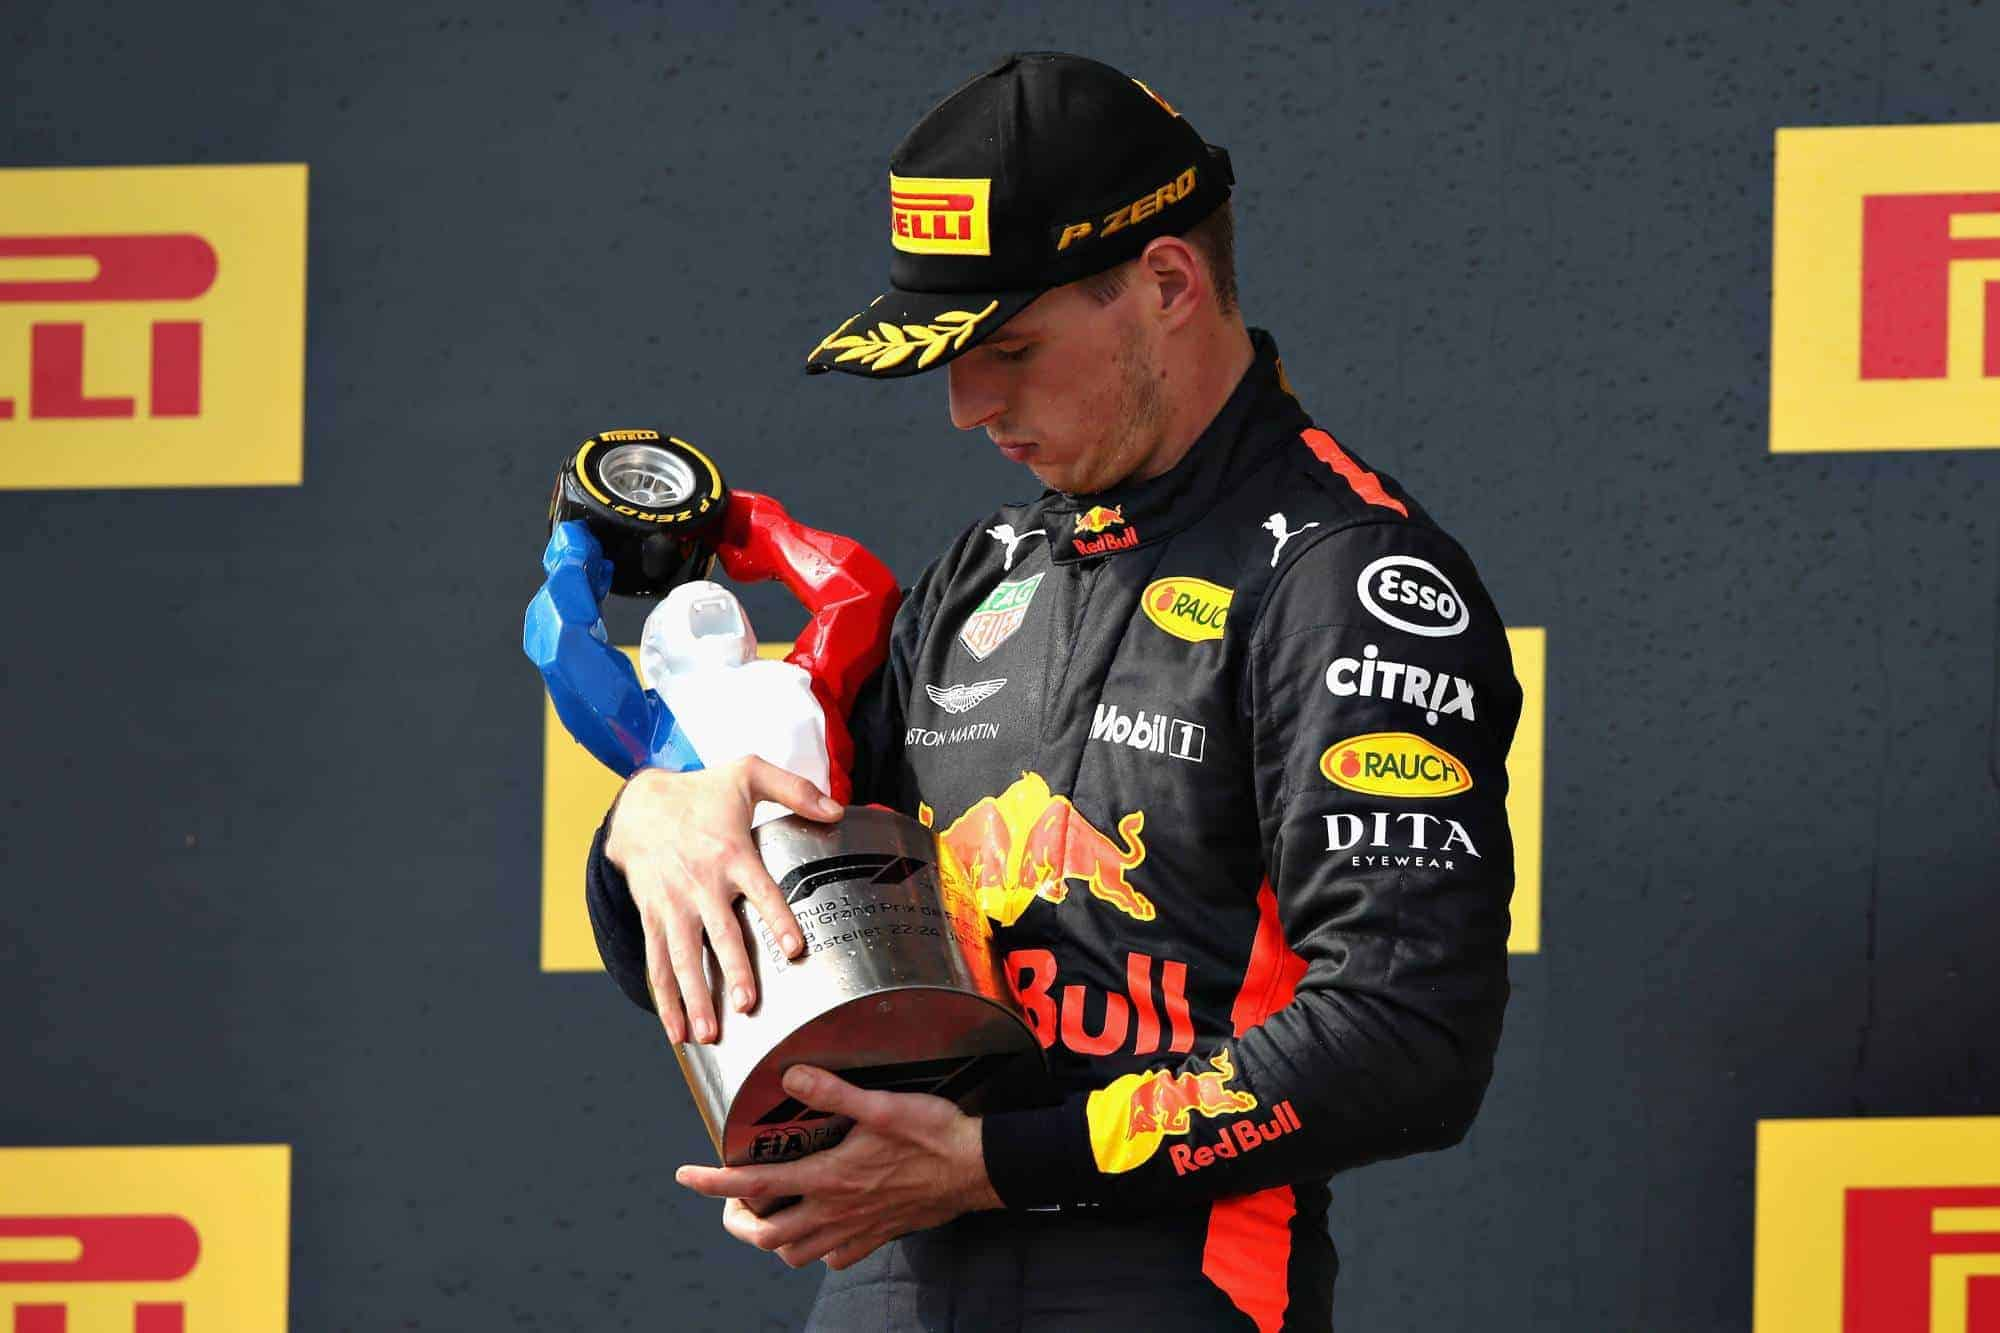 Verstappen French GP F1 2018 post race podium Red Bull RB14 Photo Red Bull